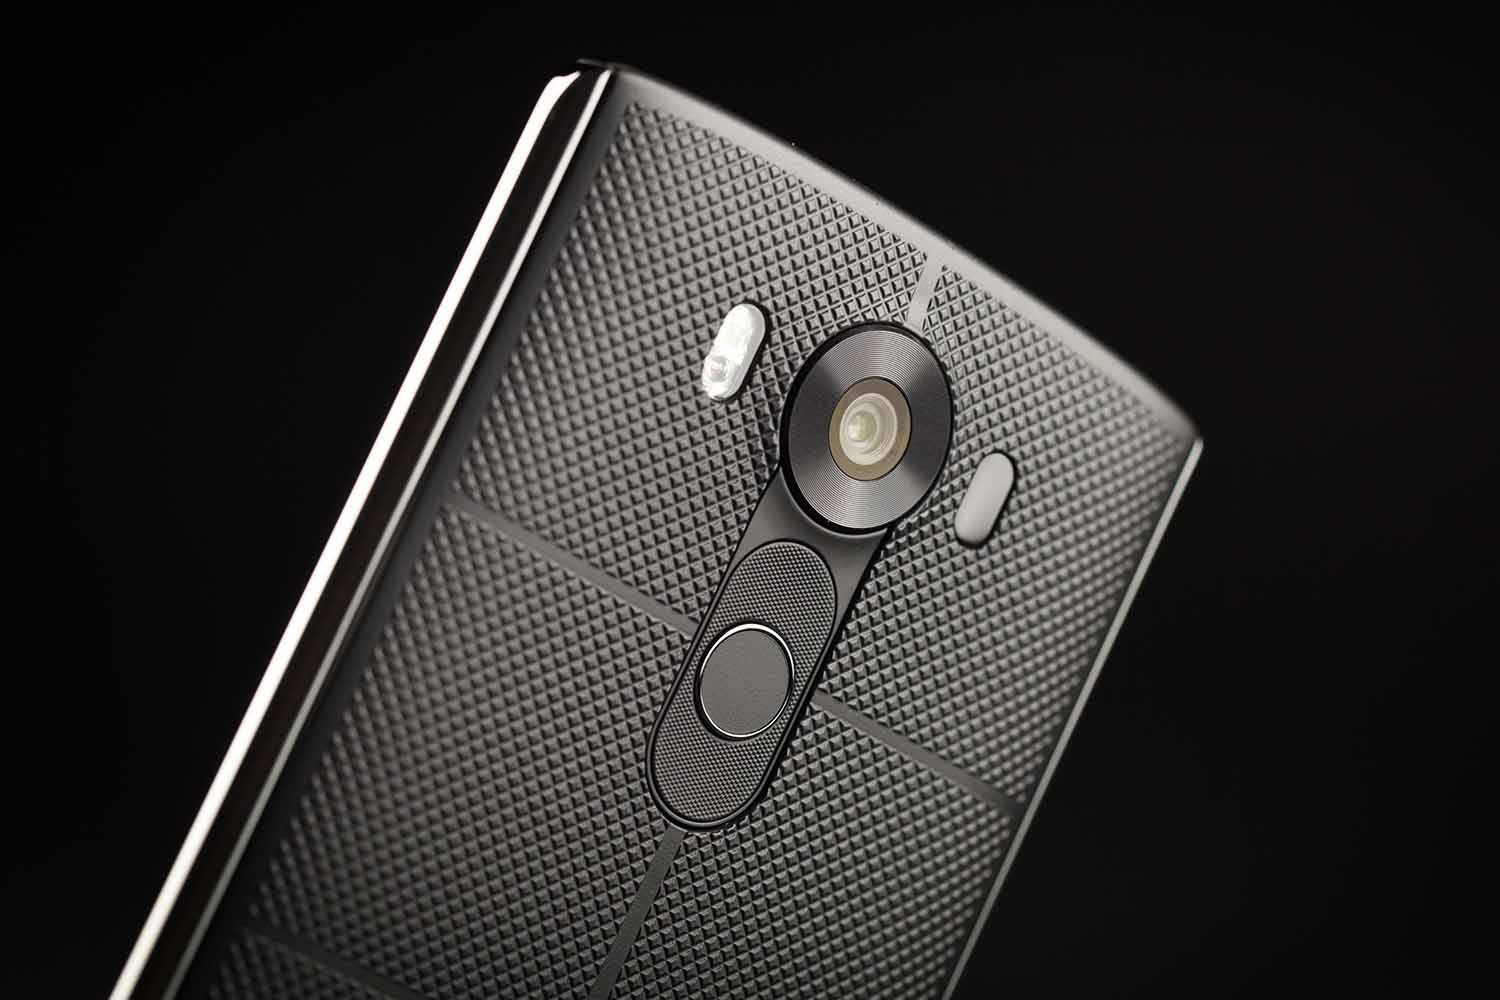 LG G4 and V10 Bootloop Issues Have Resulted in the Company